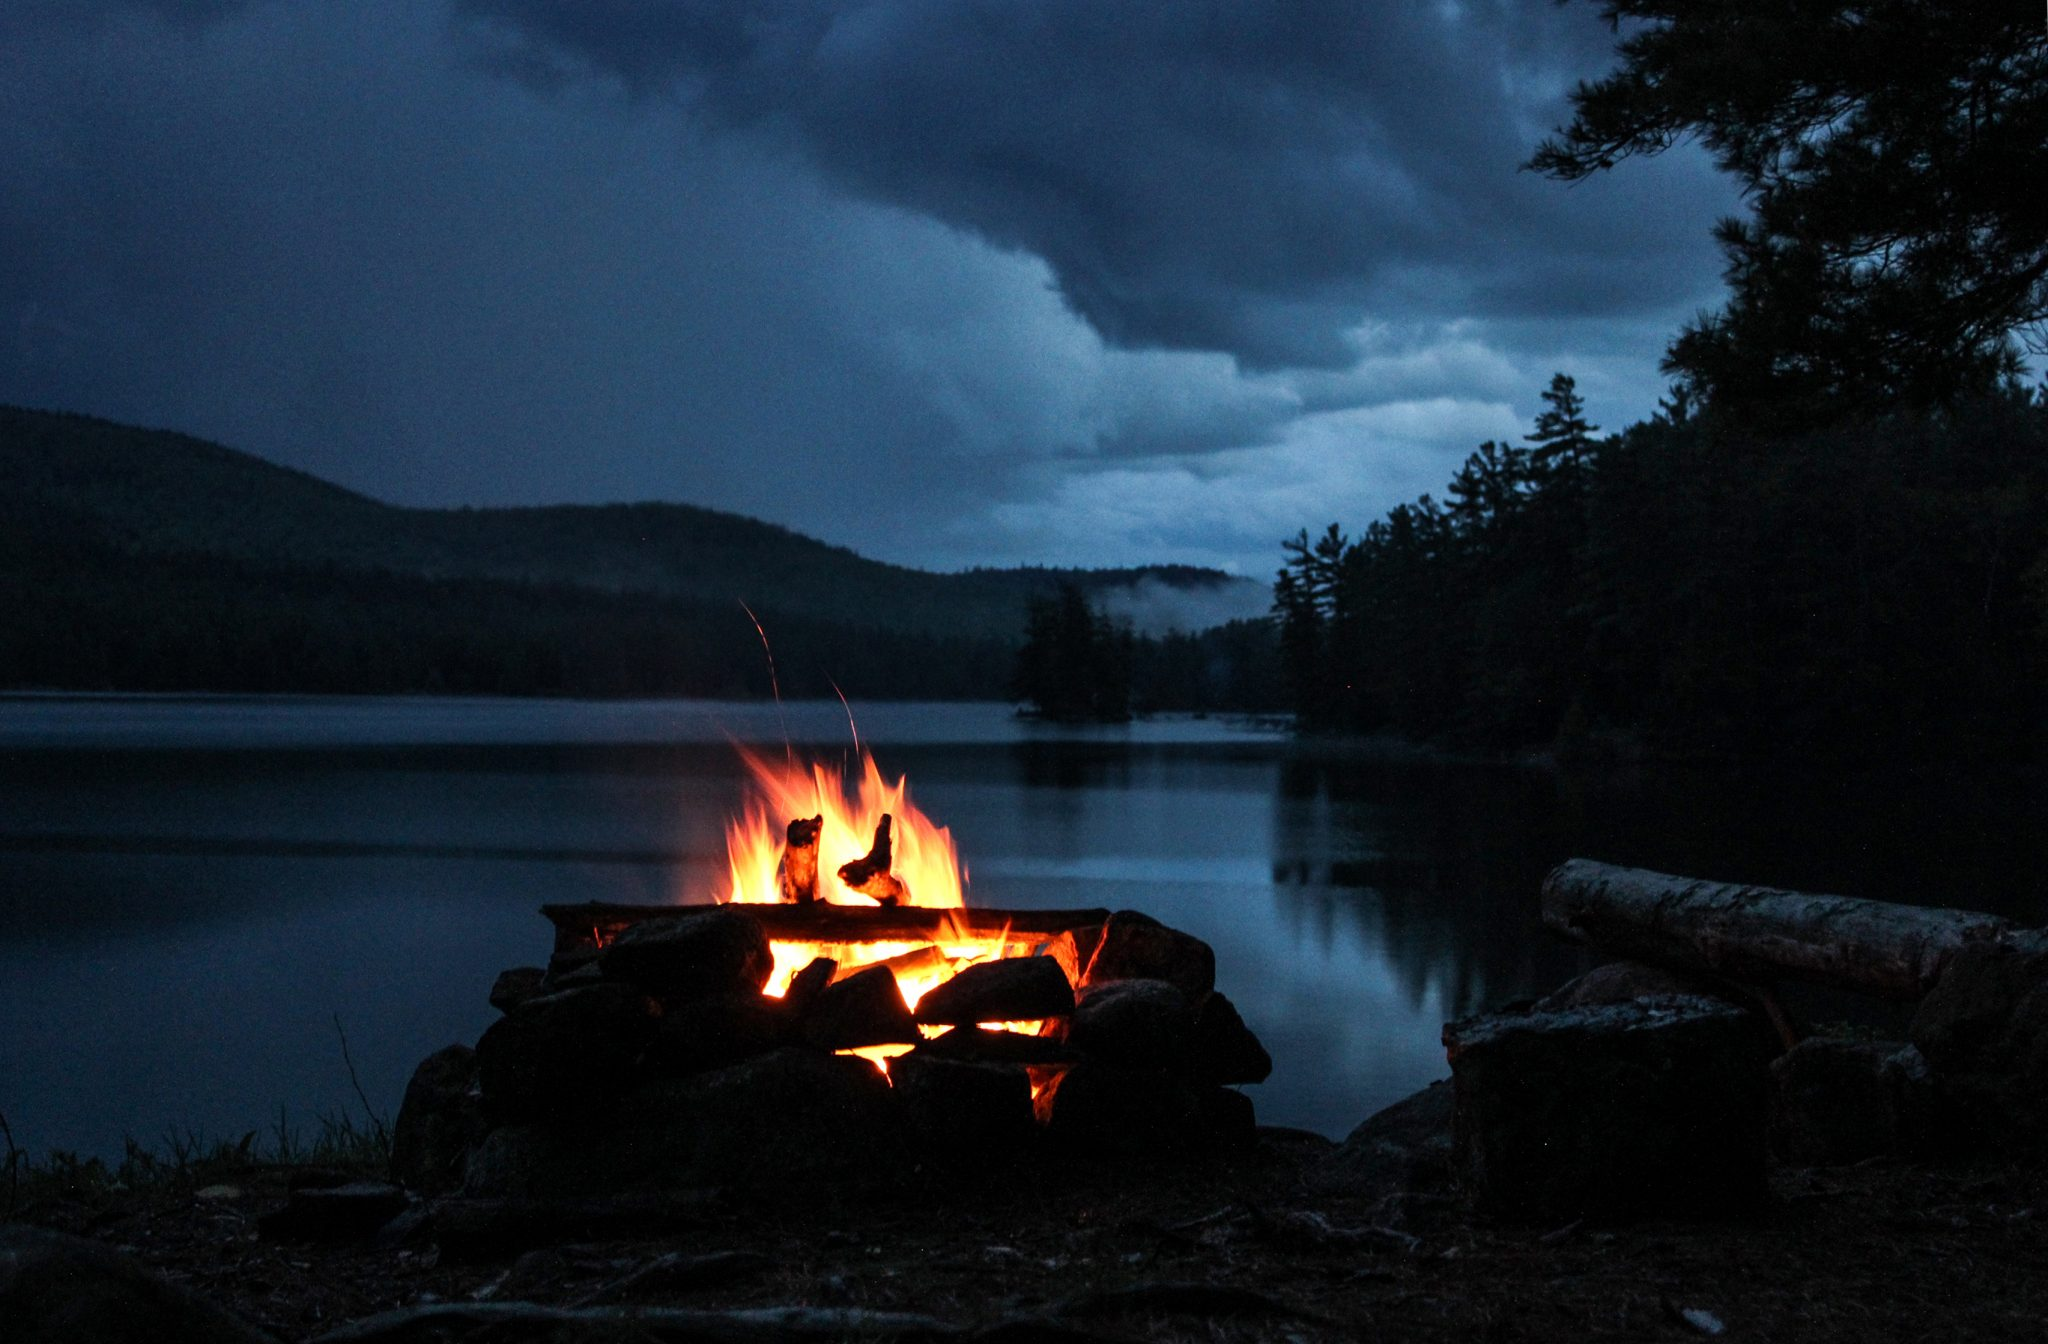 Rainy Fall Day Wallpaper Pharaoh Lake Wilderness A Campfire Between Storms The